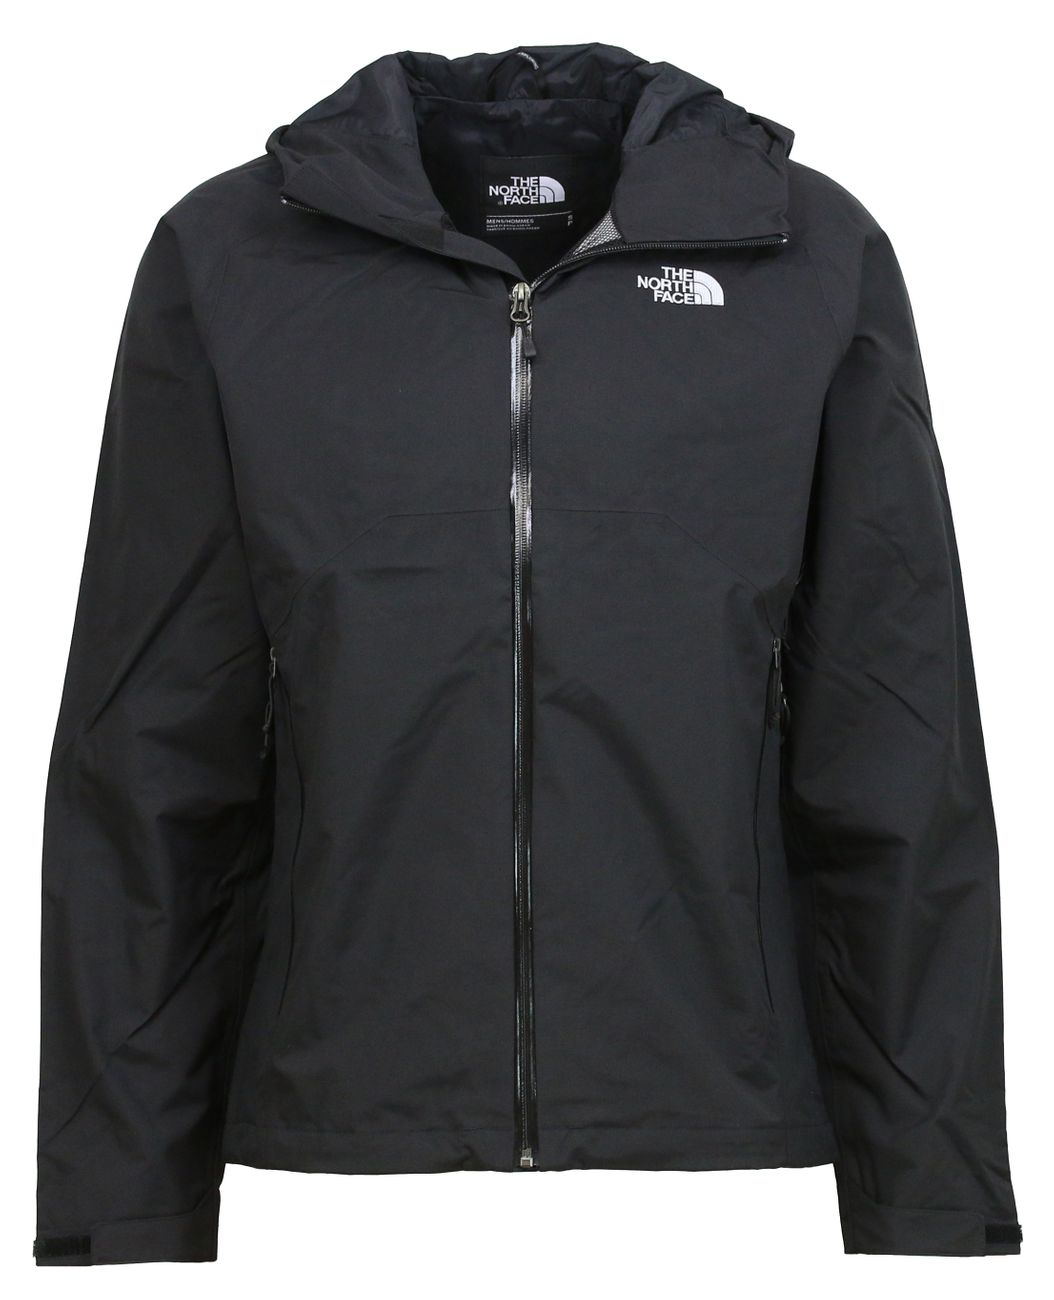 reputable site 7a99b dc664 The North Face Stratos Herren Regenjacke